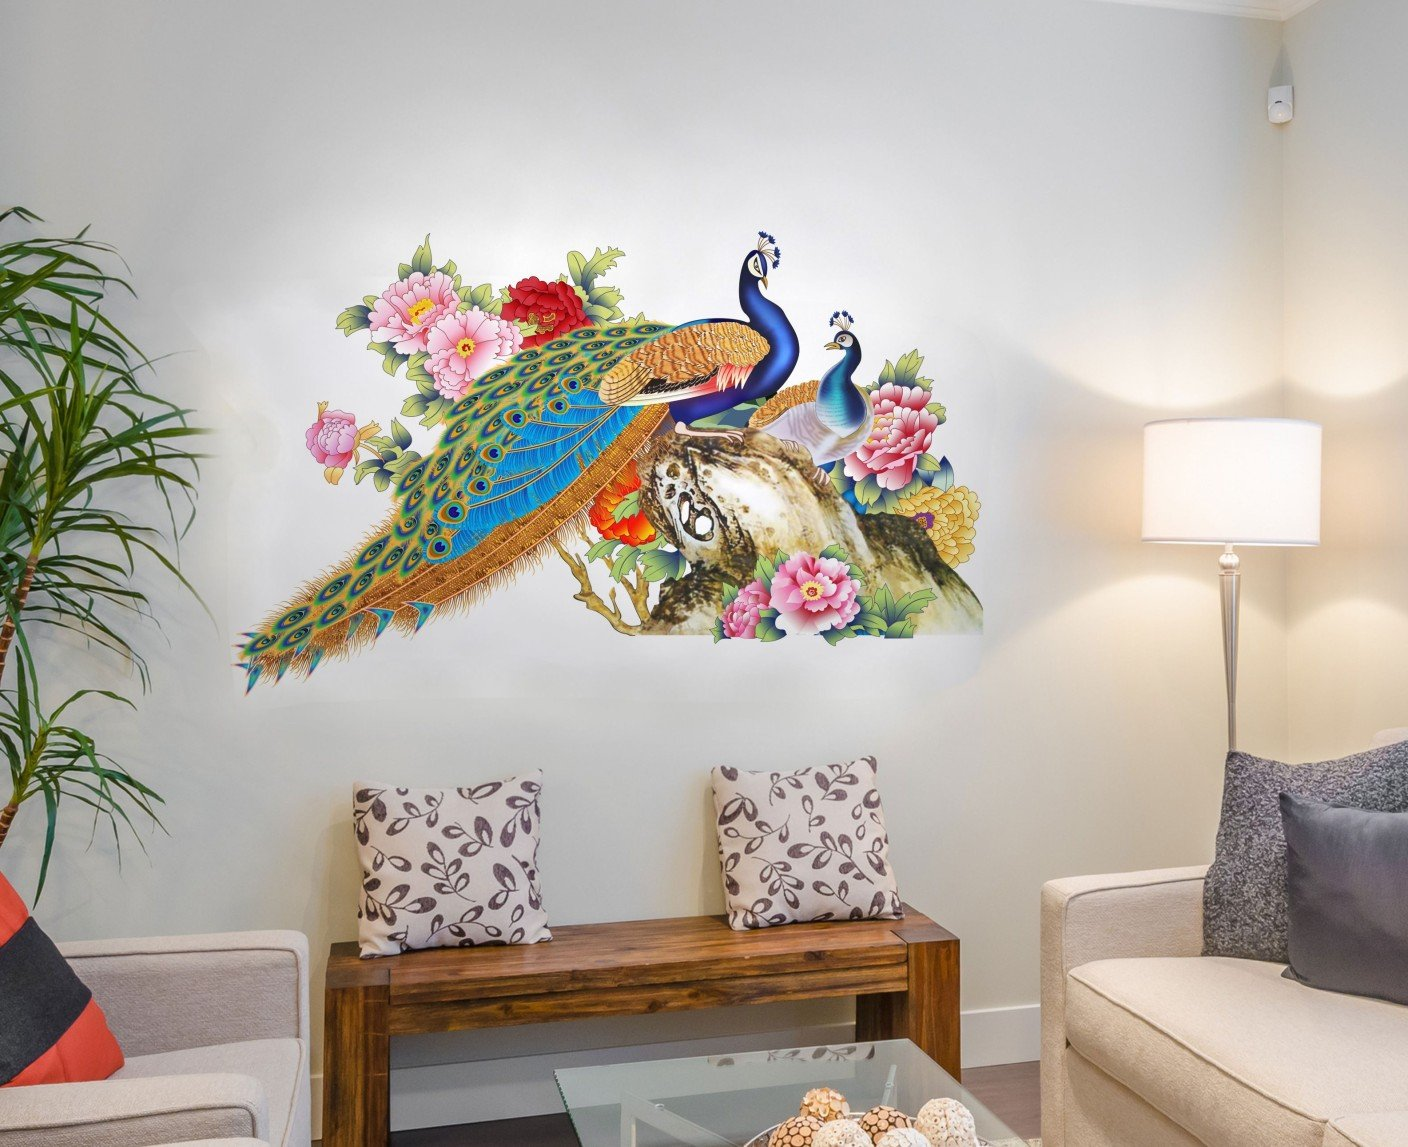 Living Room Wall Stickers: Buy Living Room Wall Stickers Online at ...